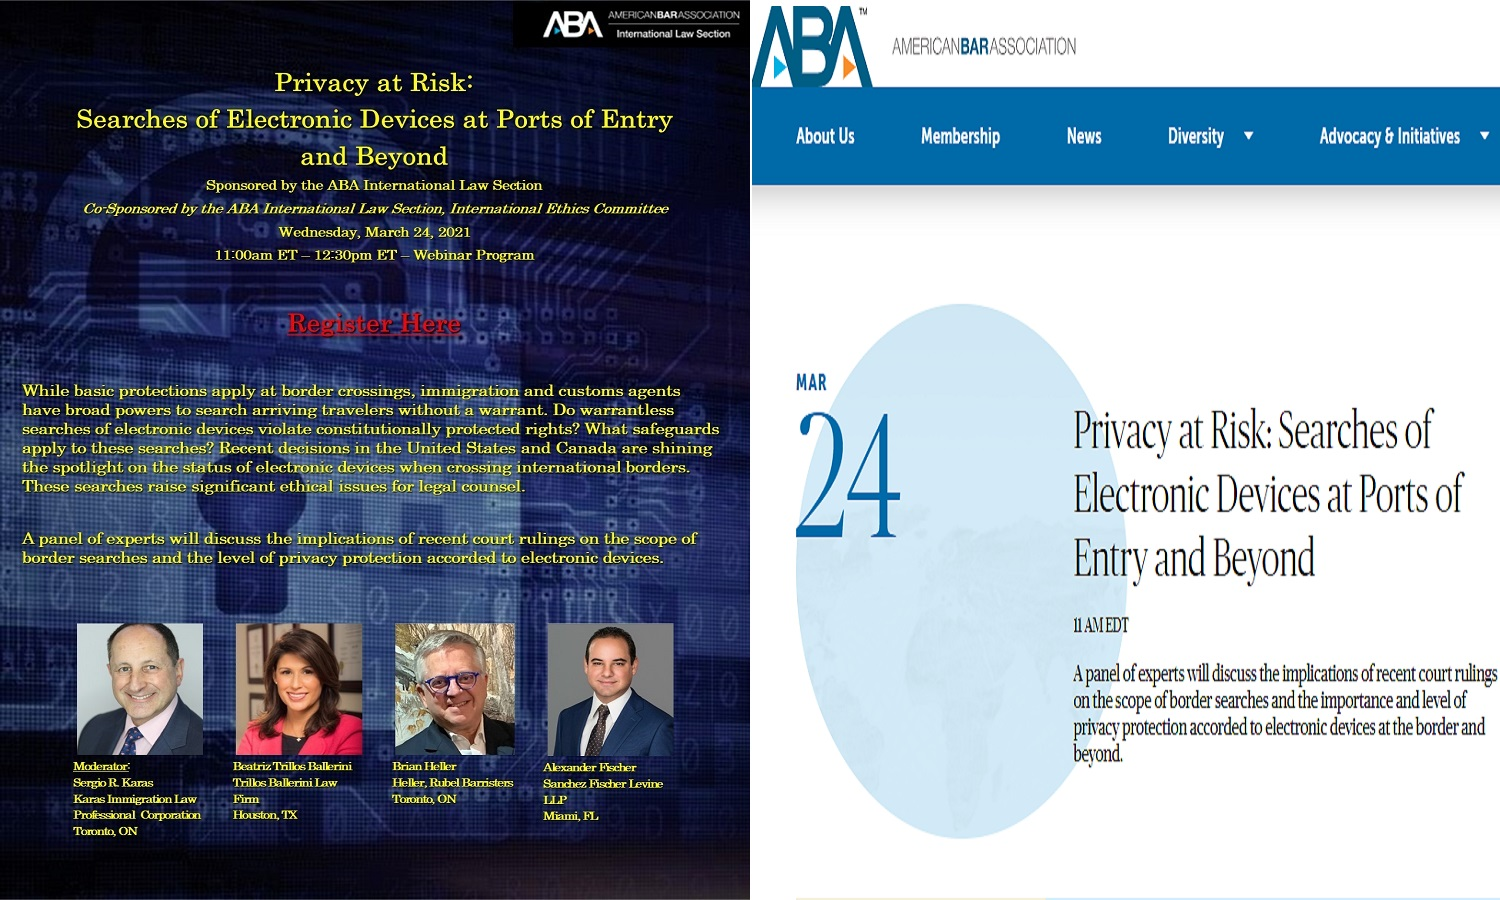 Firm Partner to Speak at ABA International Law Panel on March 24